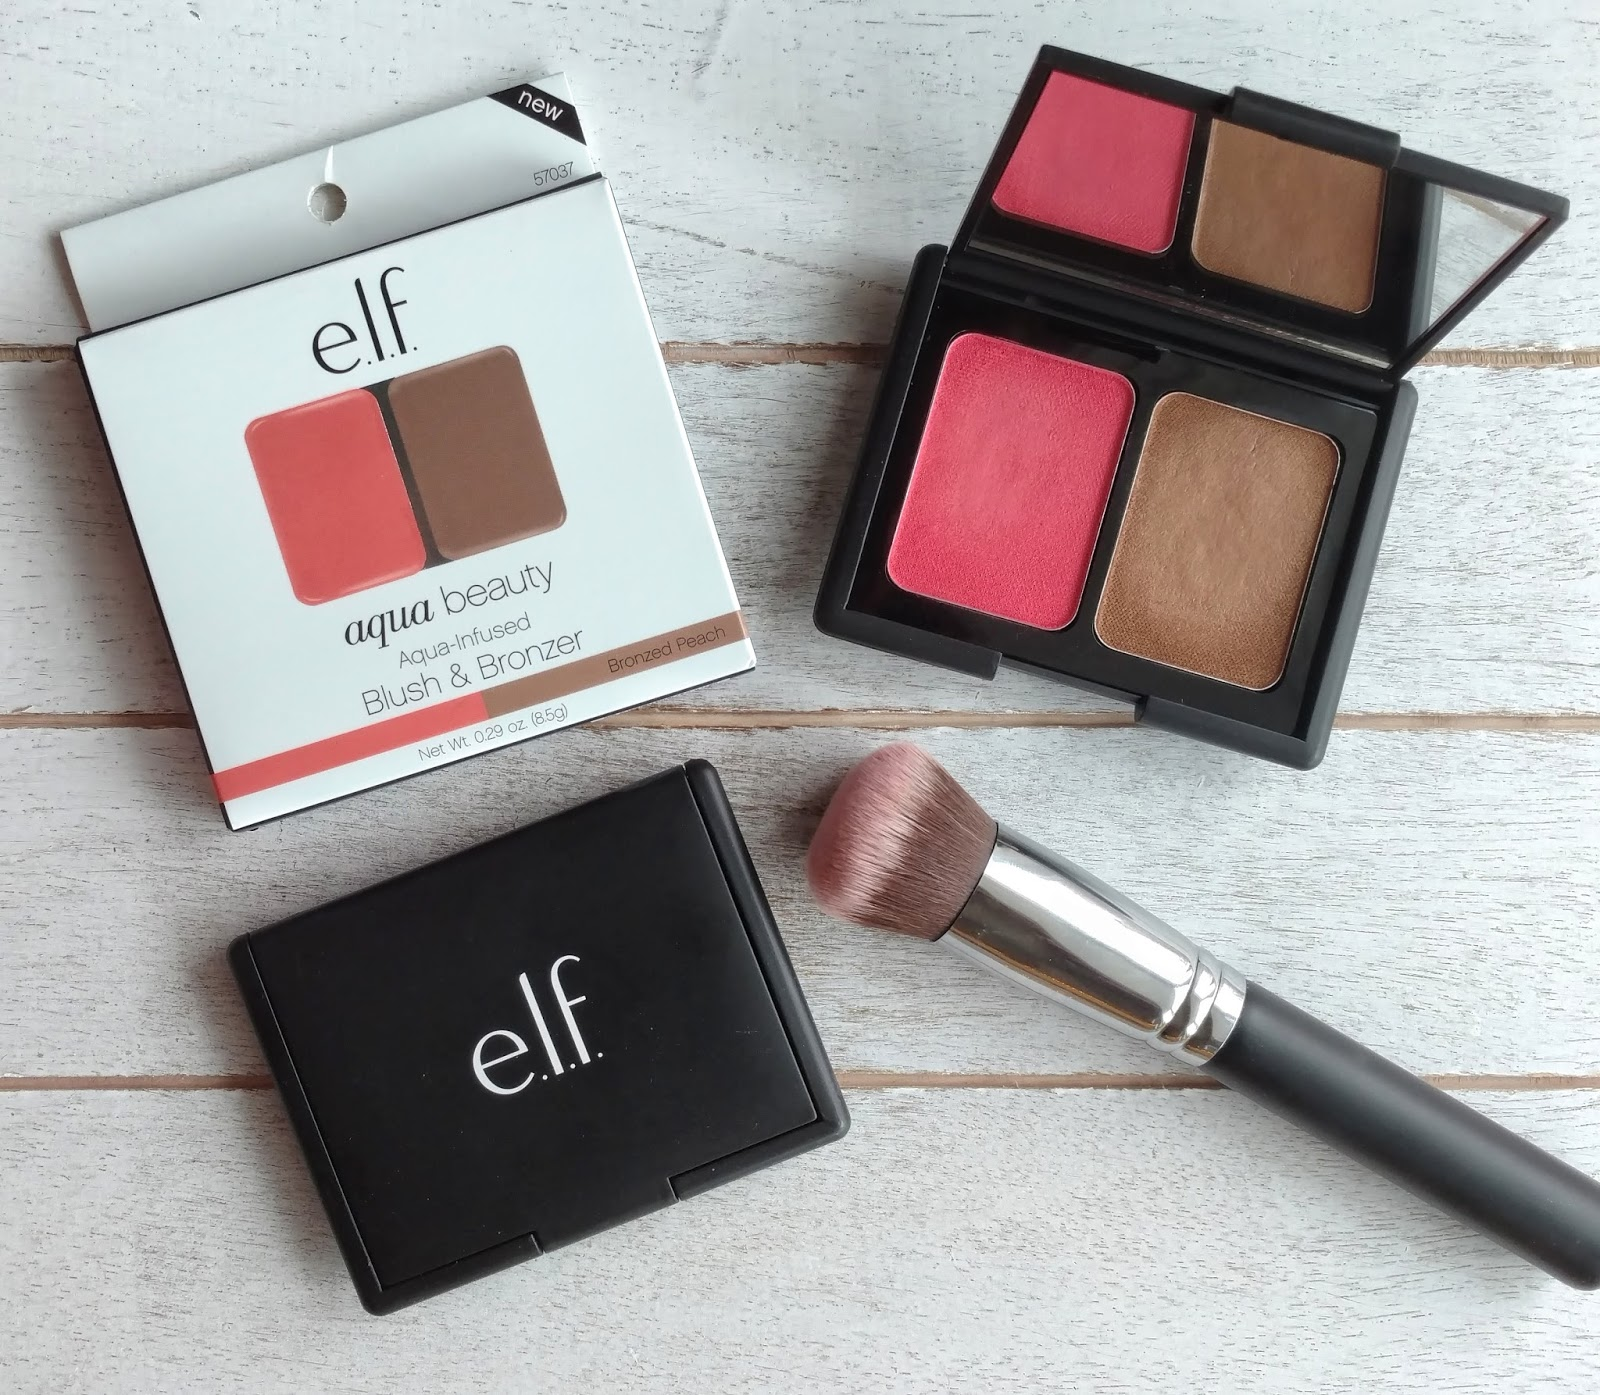 Elf cosmetics blush